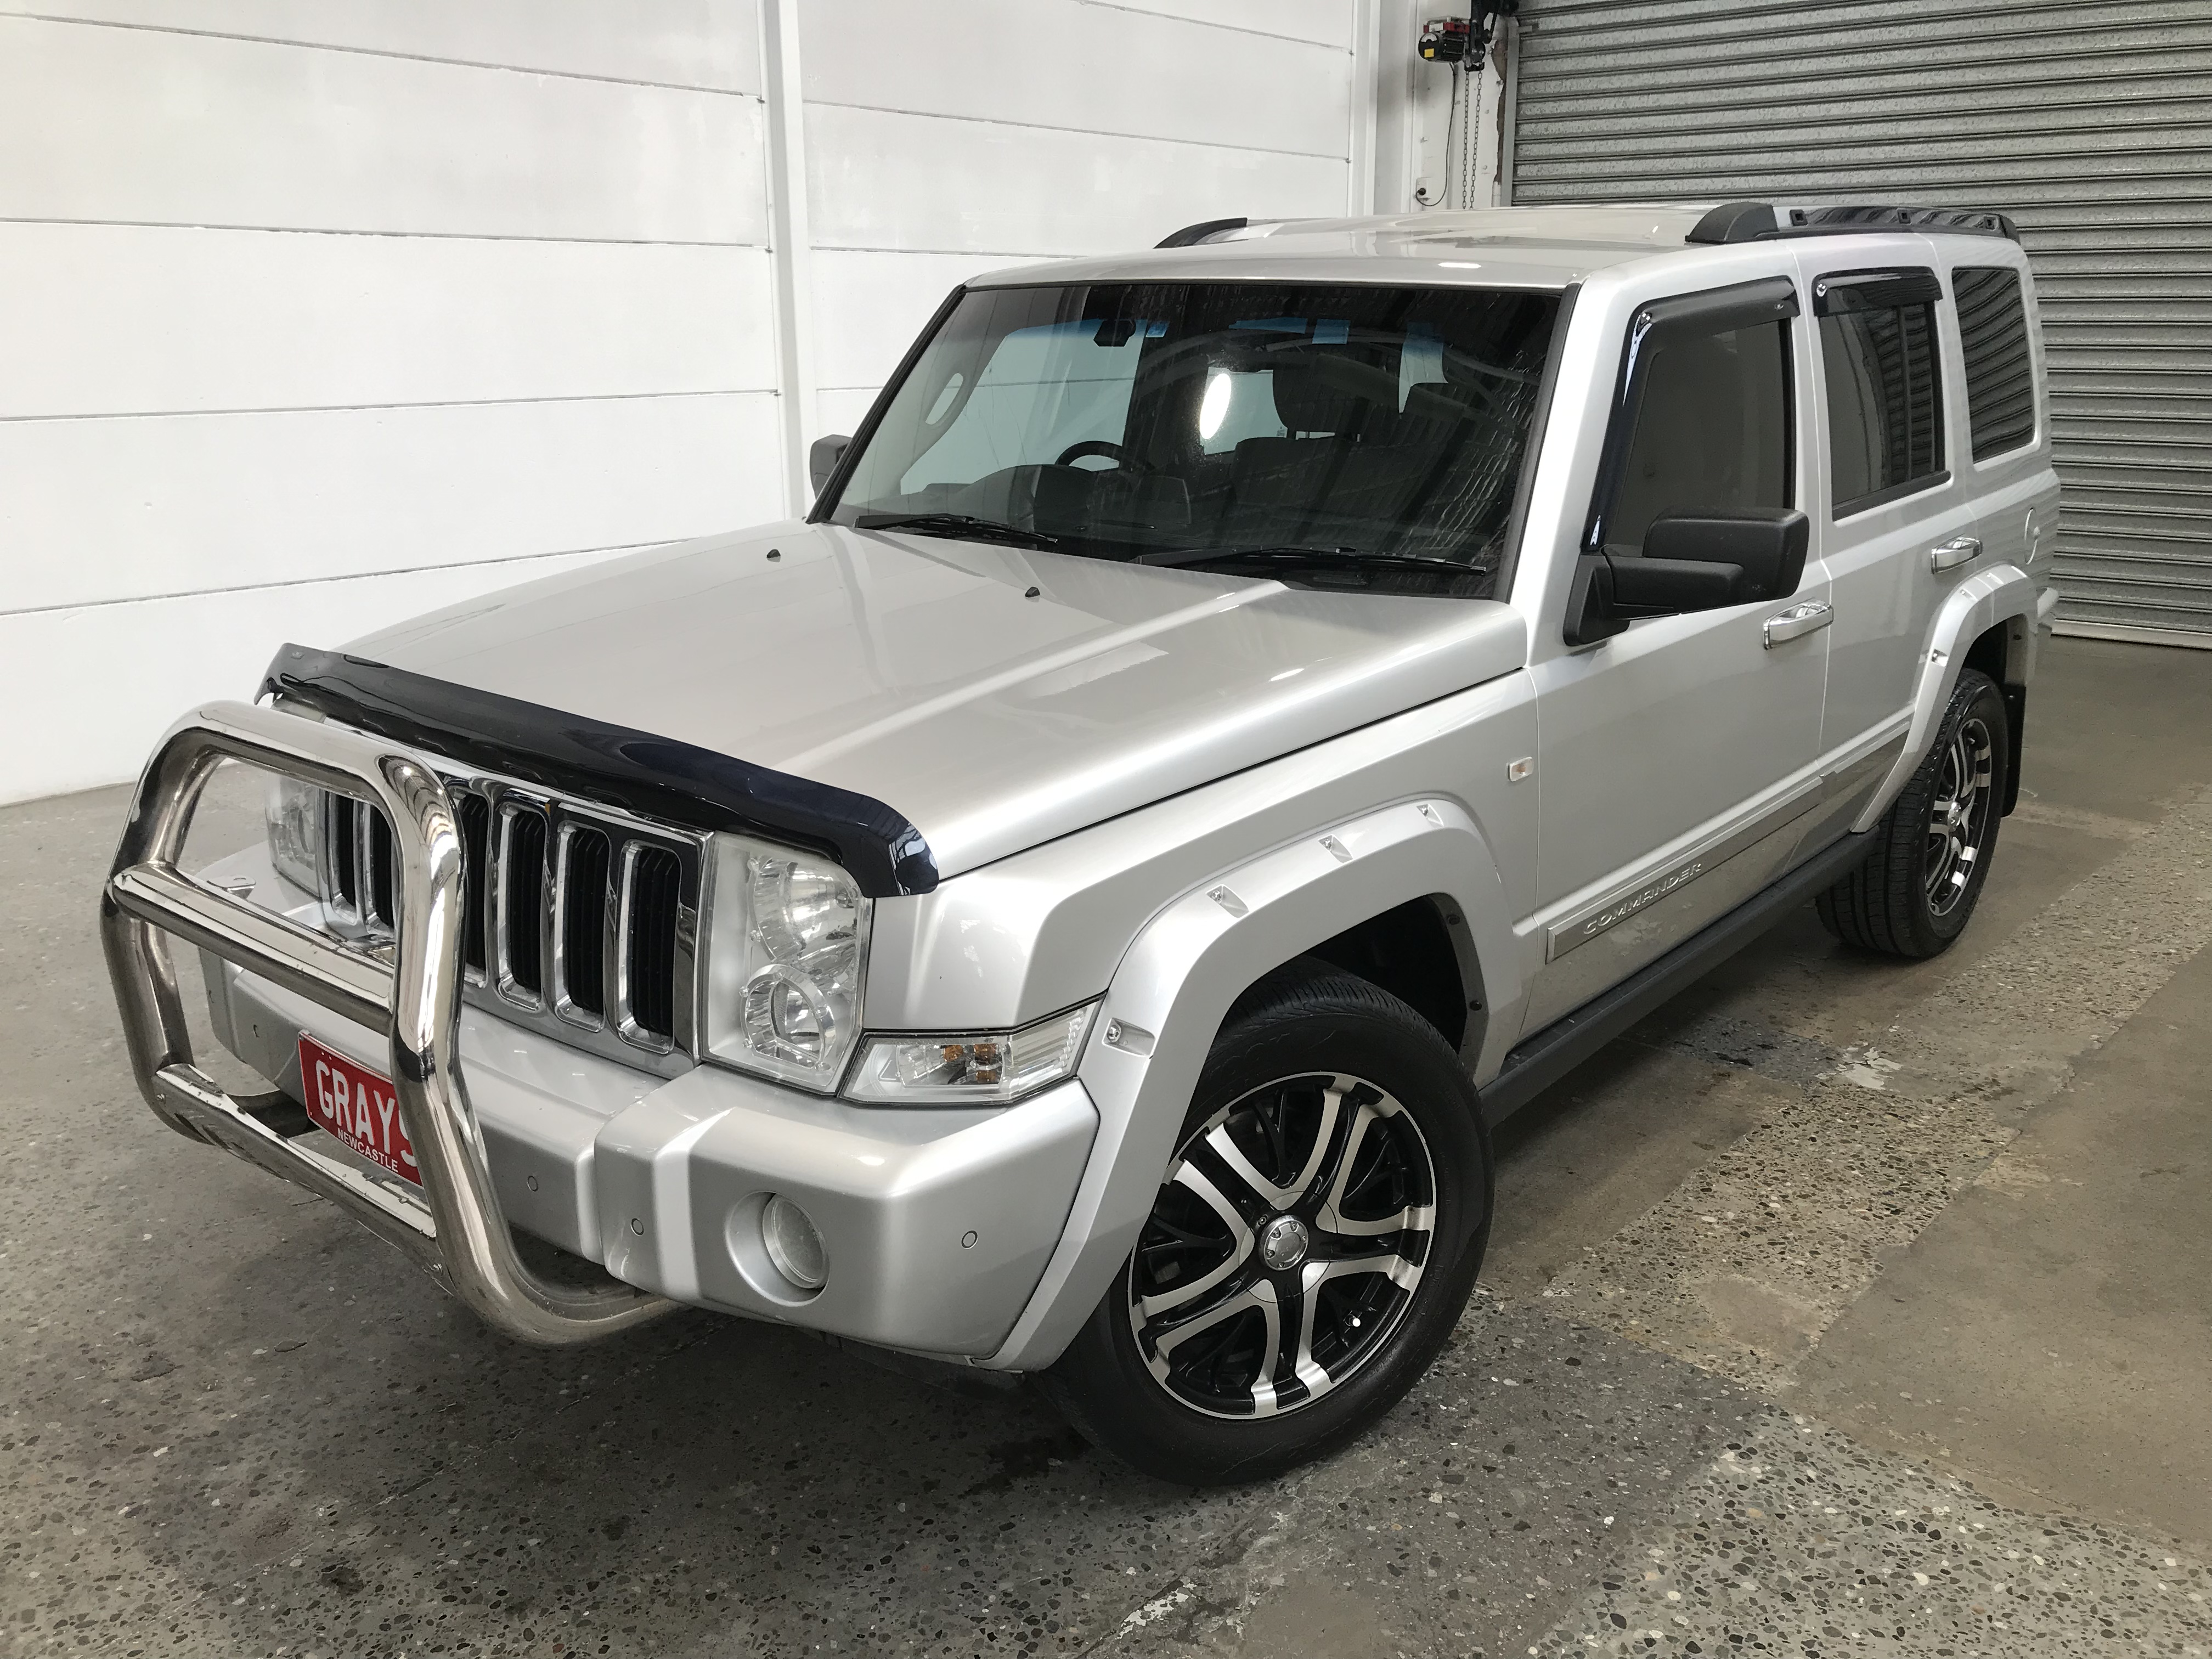 Jeep Commander Turbo Diesel Automatic 7 Seats Wagon